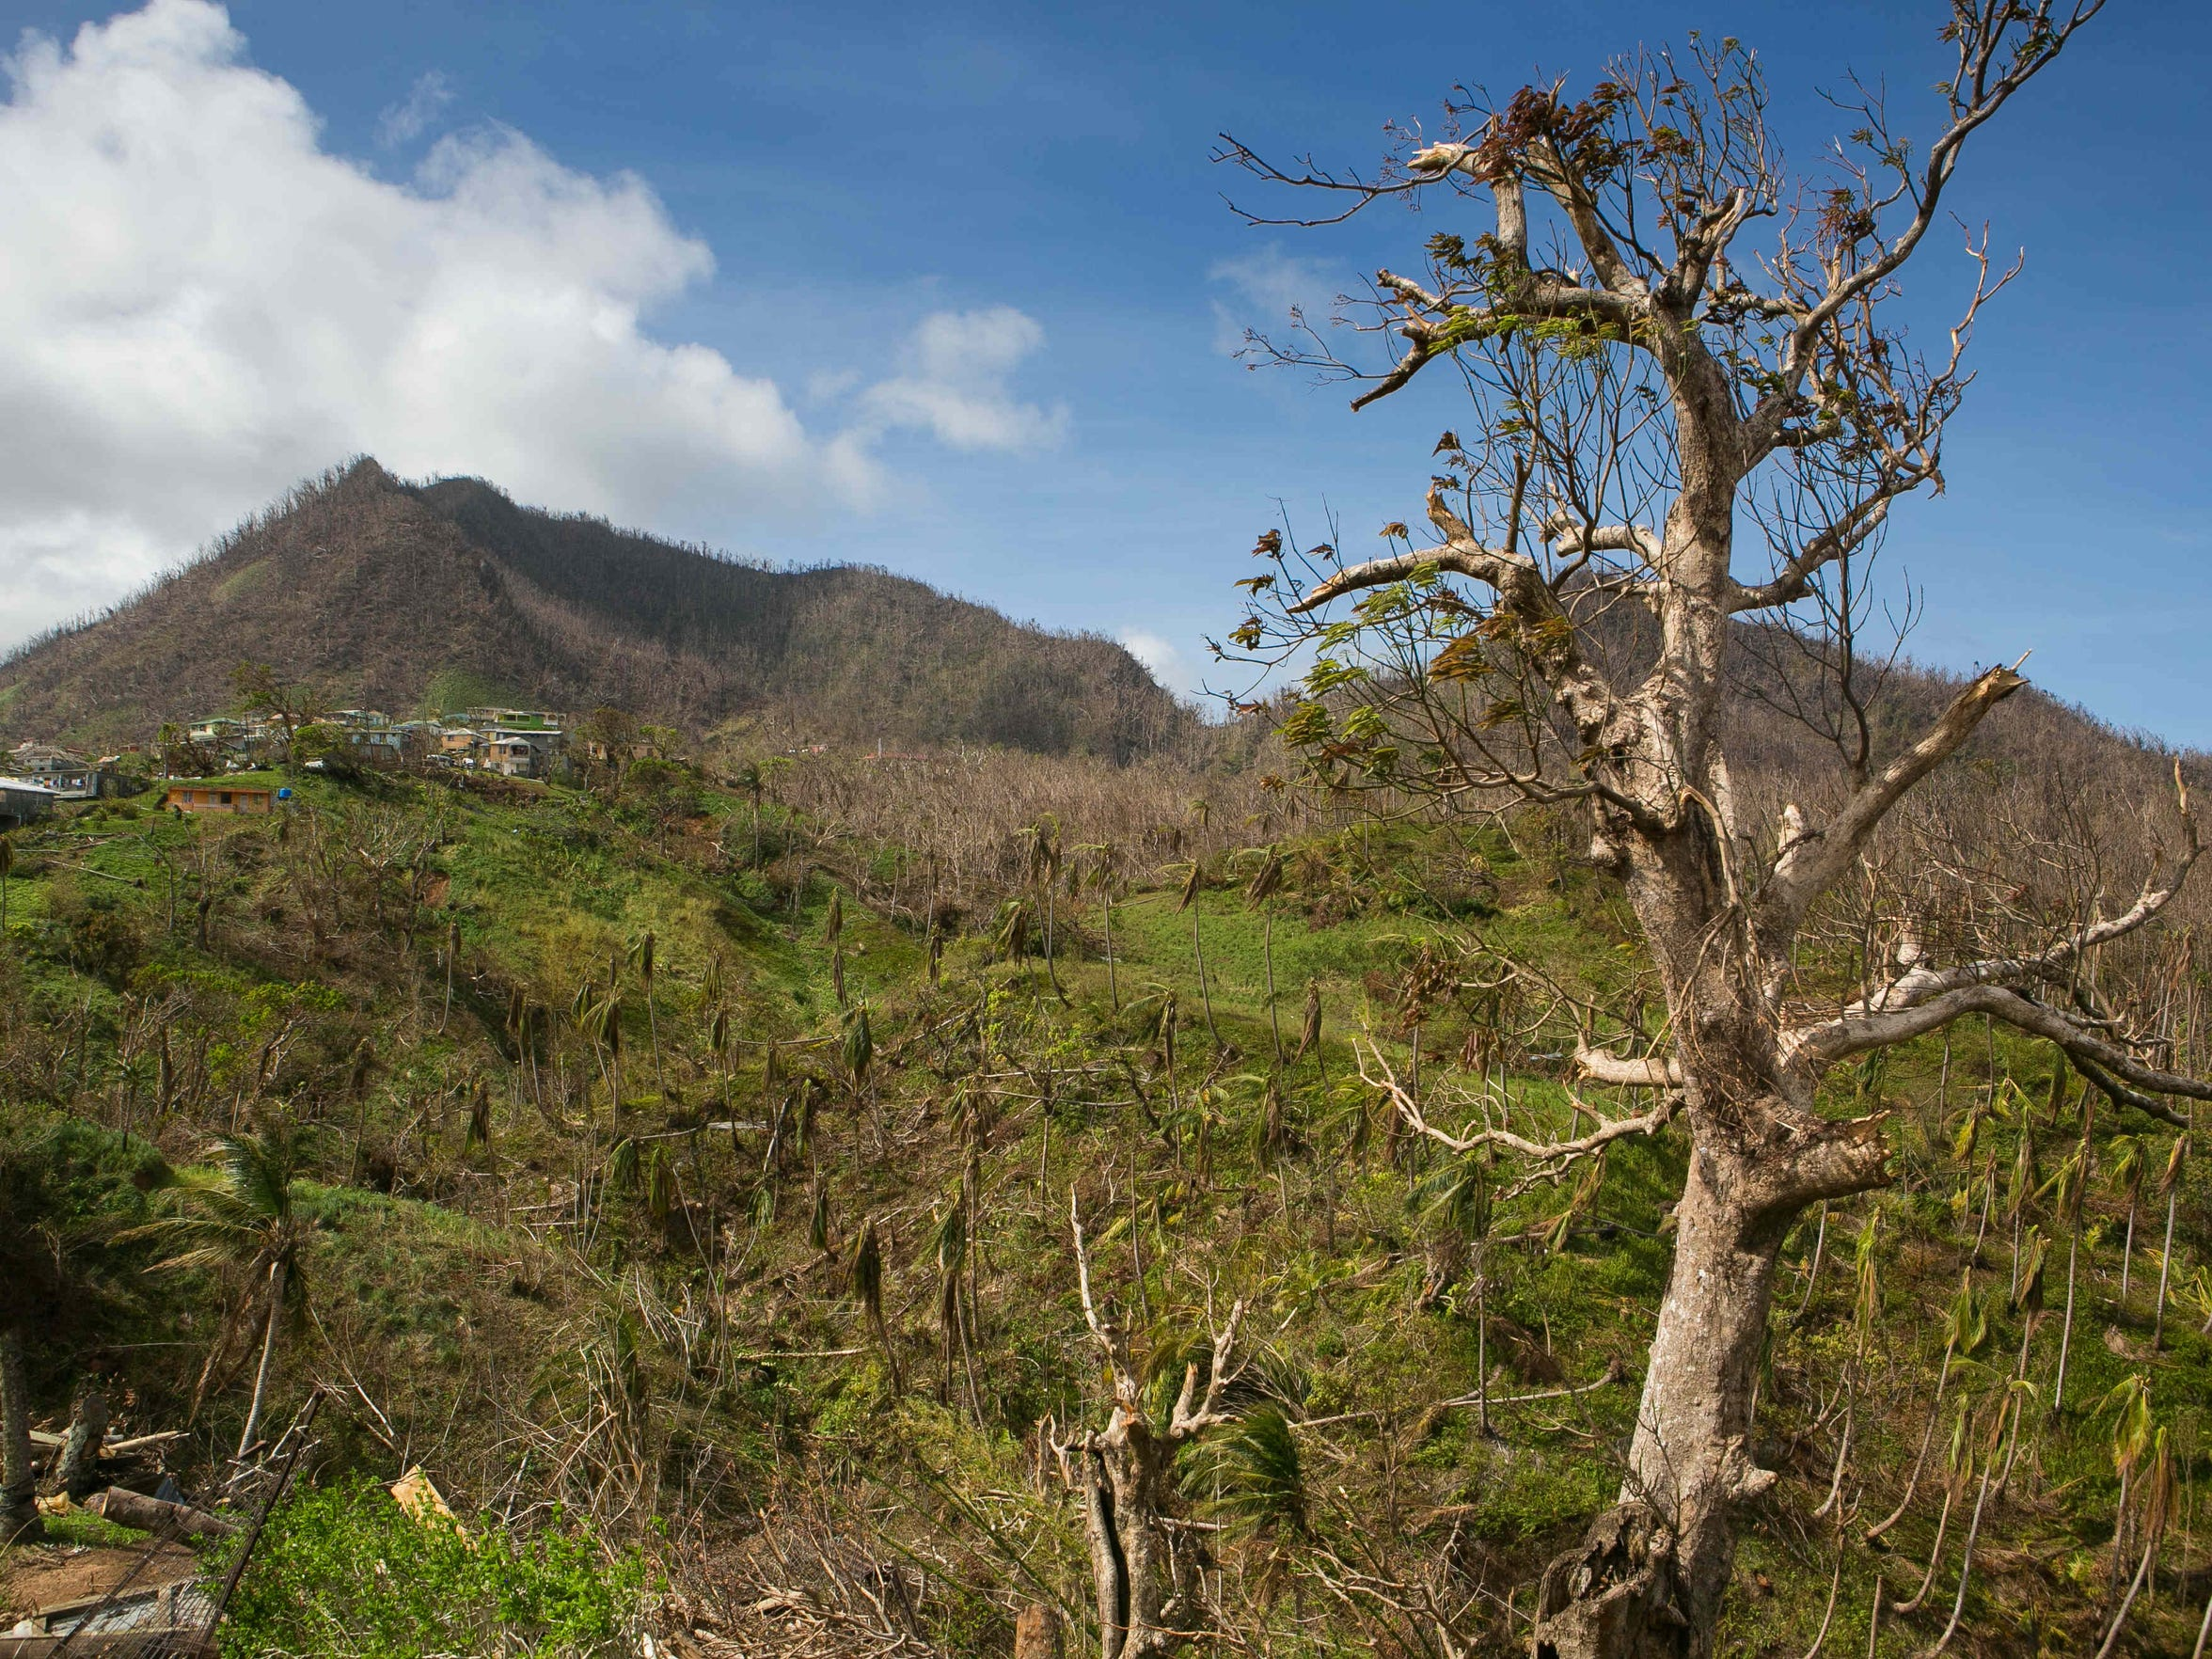 The hills around the village of Paix Bouche are stripped of leaves from the forces of Hurricane Maria.